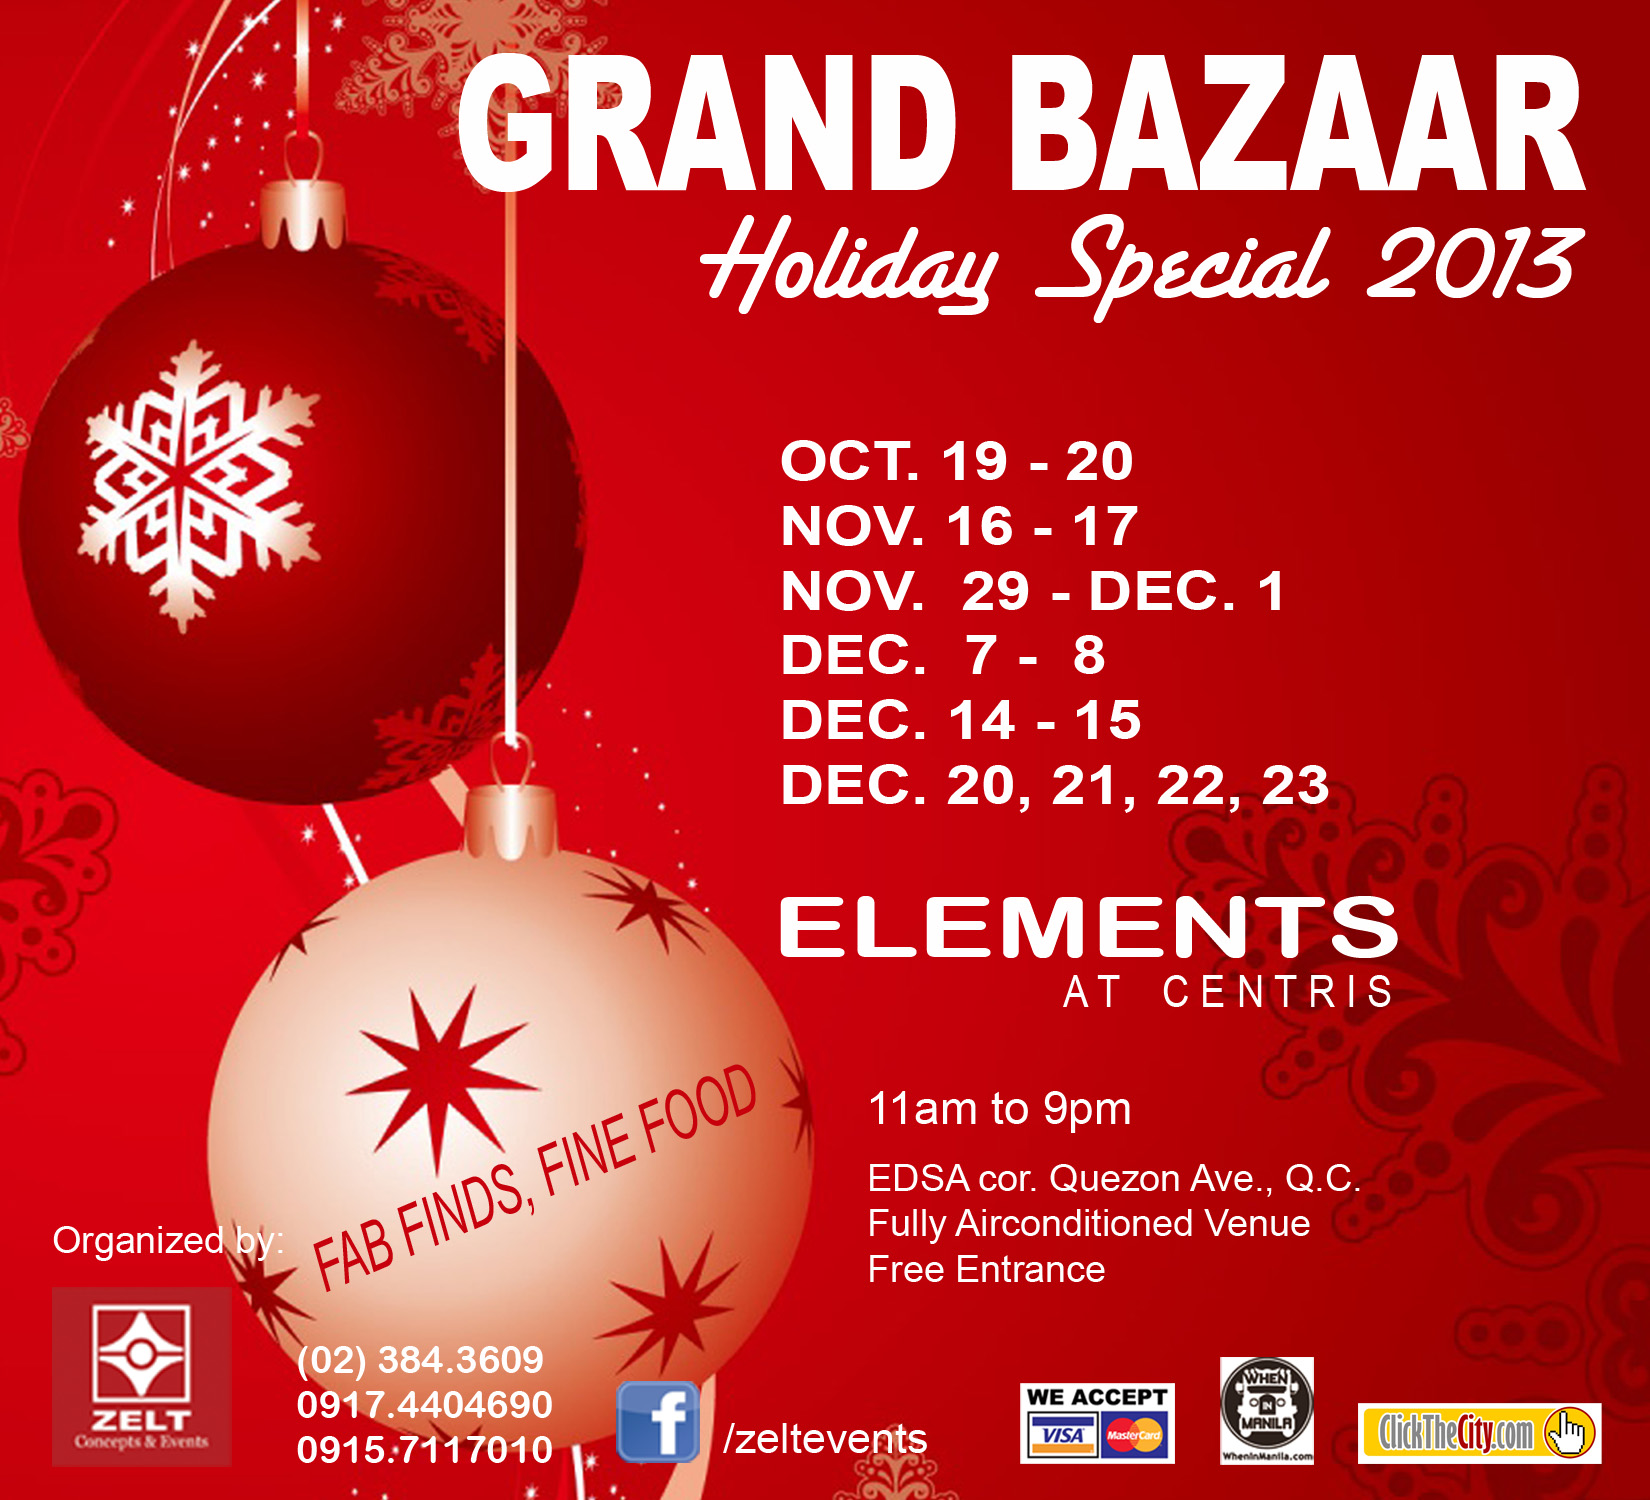 Grand Bazaar @ Elements, Eton Centris October - December 2013